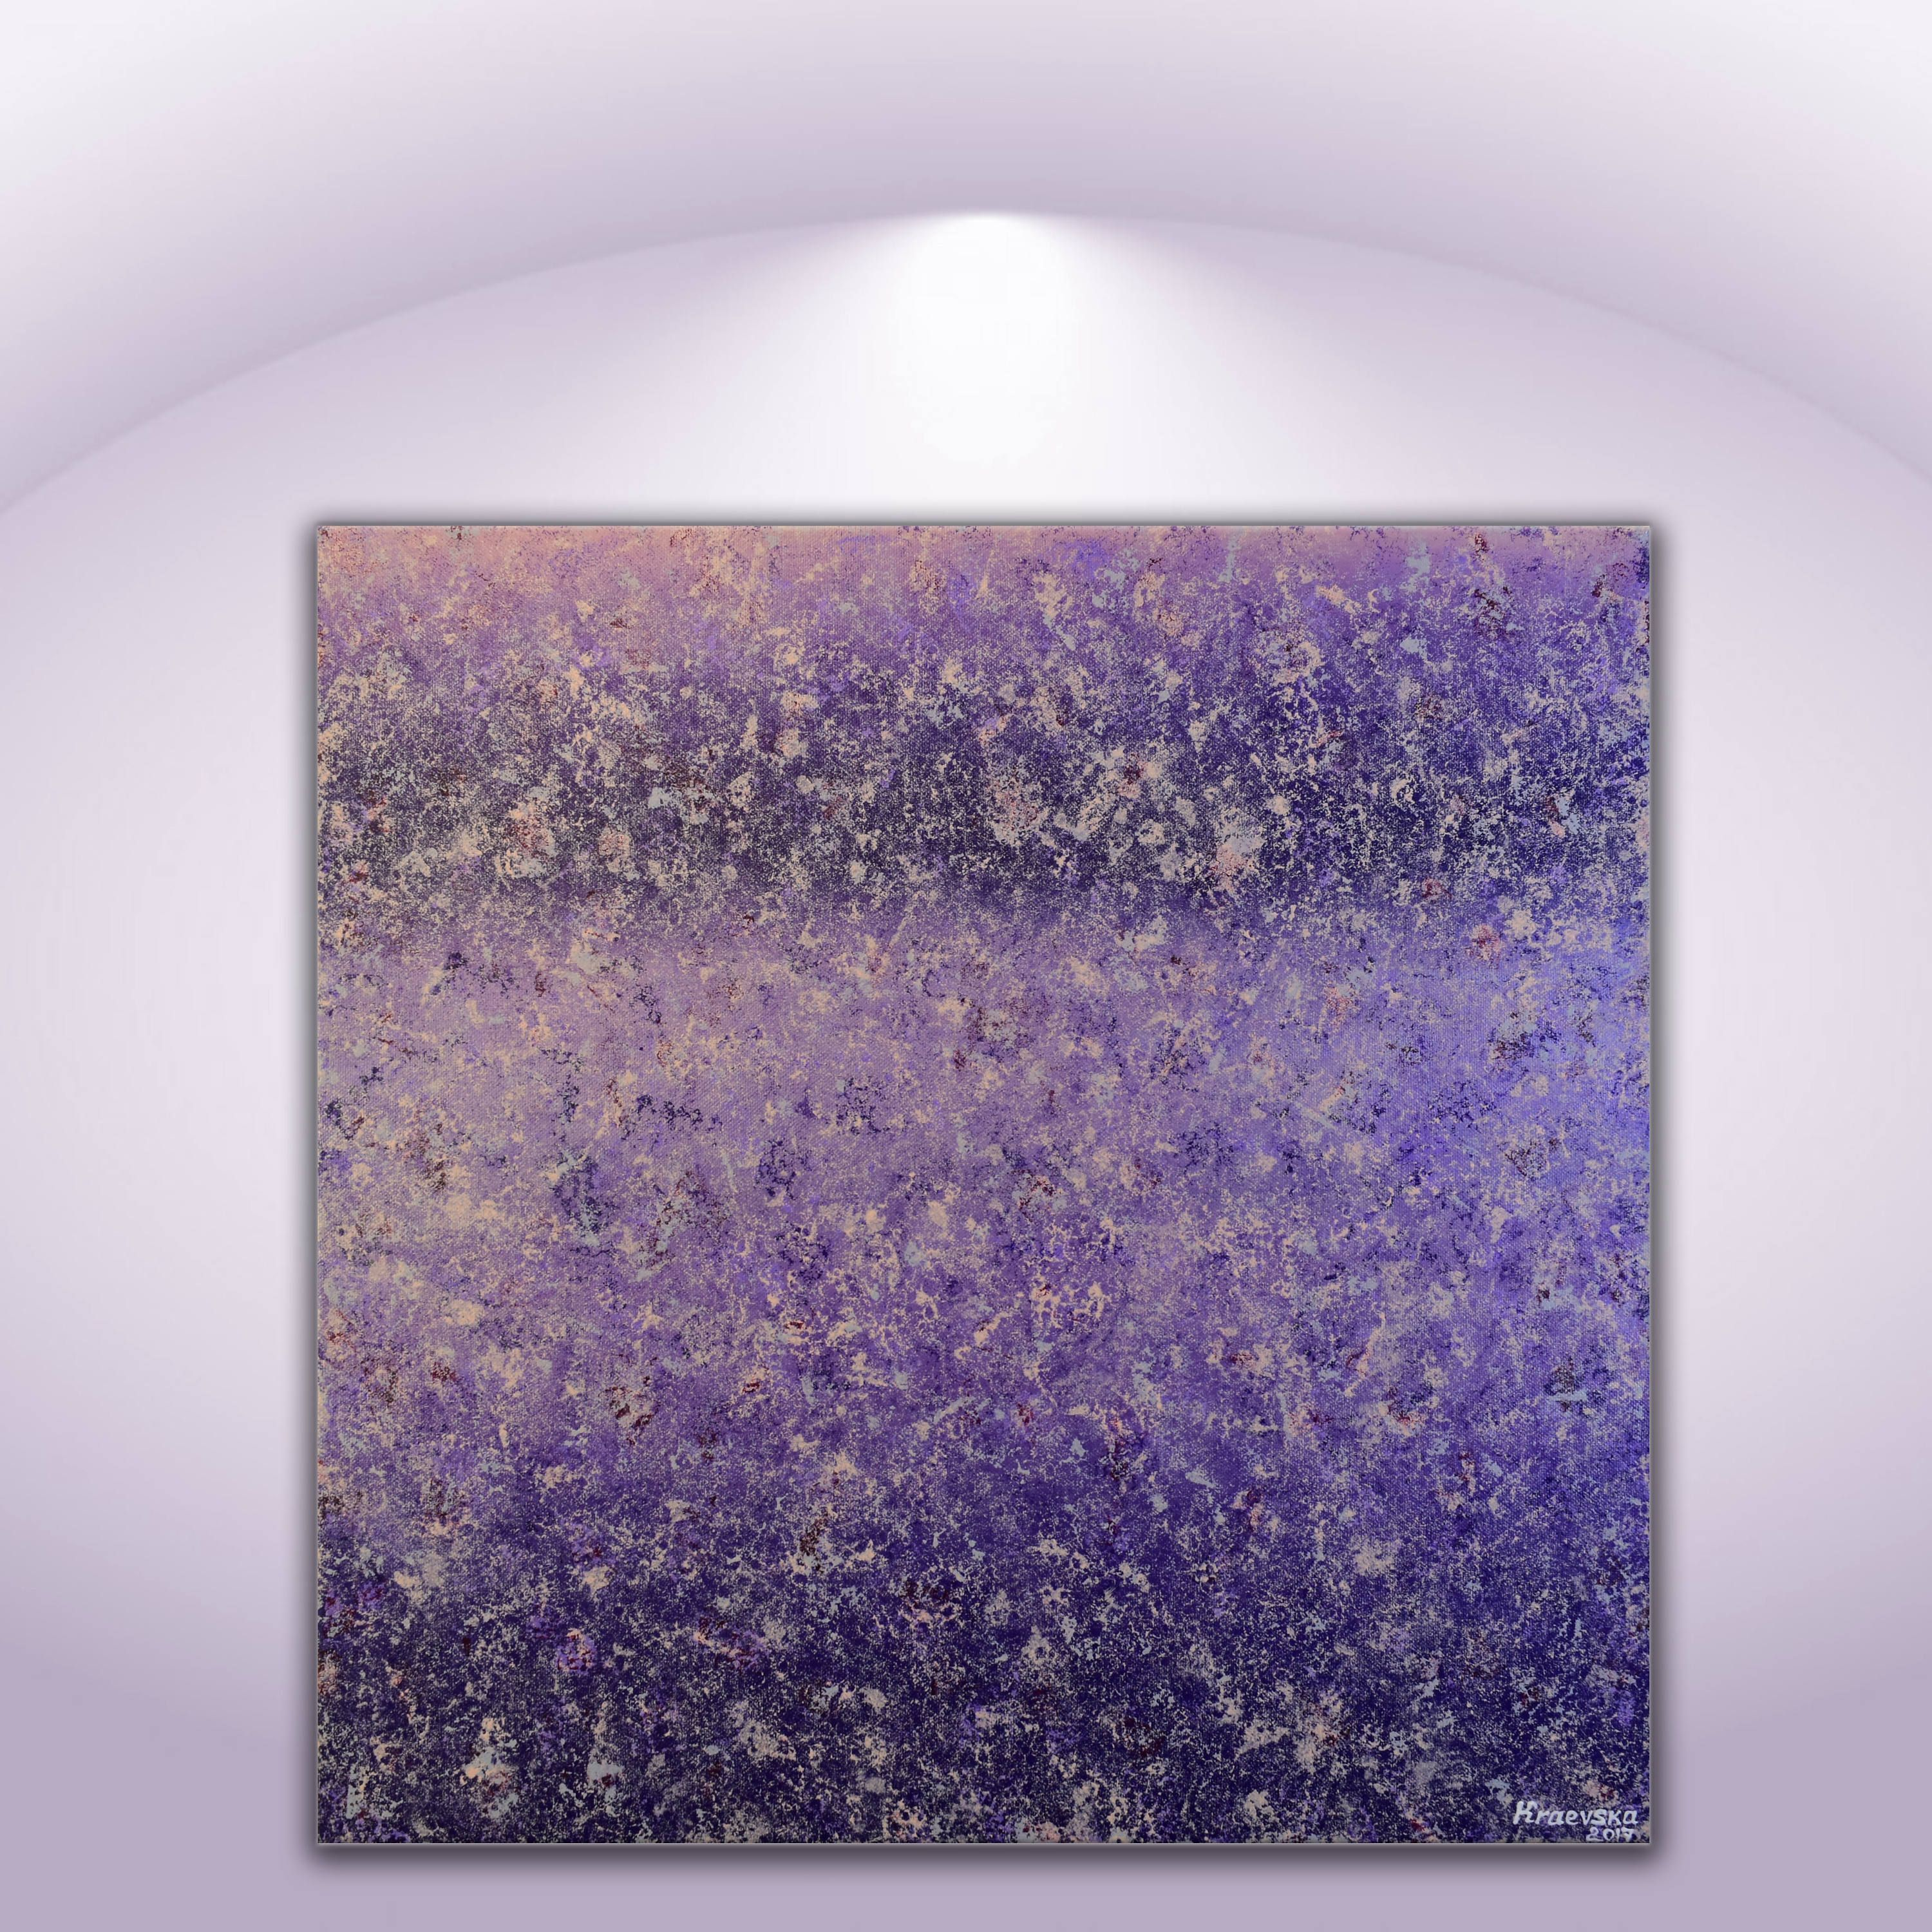 Canvas Paintings Lilac Painting On Canvas Painting Gift For Mom Art For  Home Living Room Decor Modern Art Contemporary Wall Art Abstract Bedroom  Decor Gift ...